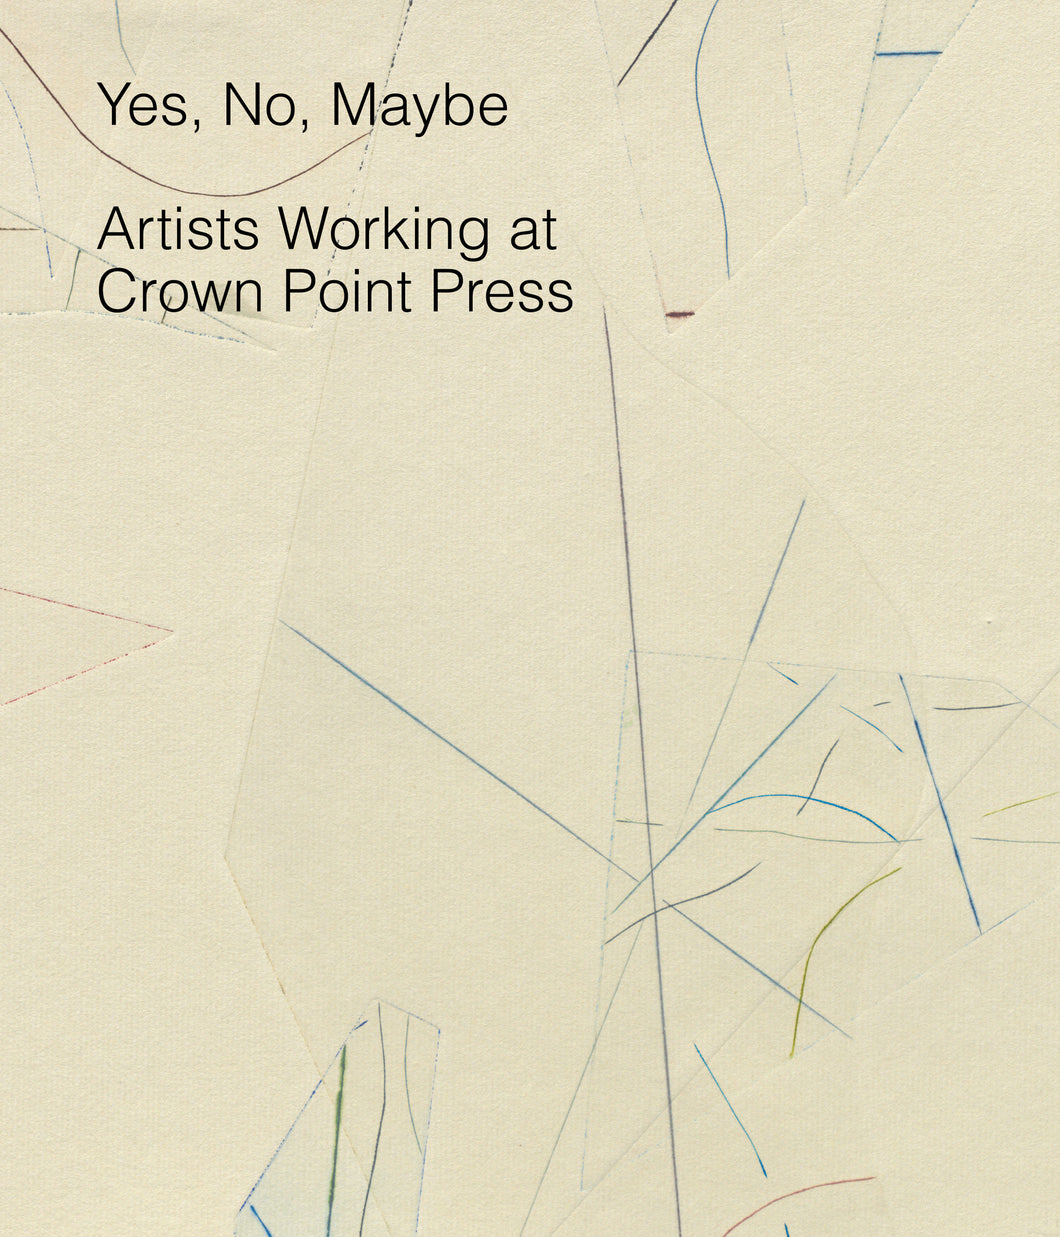 Yes, No, Maybe: Artists Working at Crown Point Press